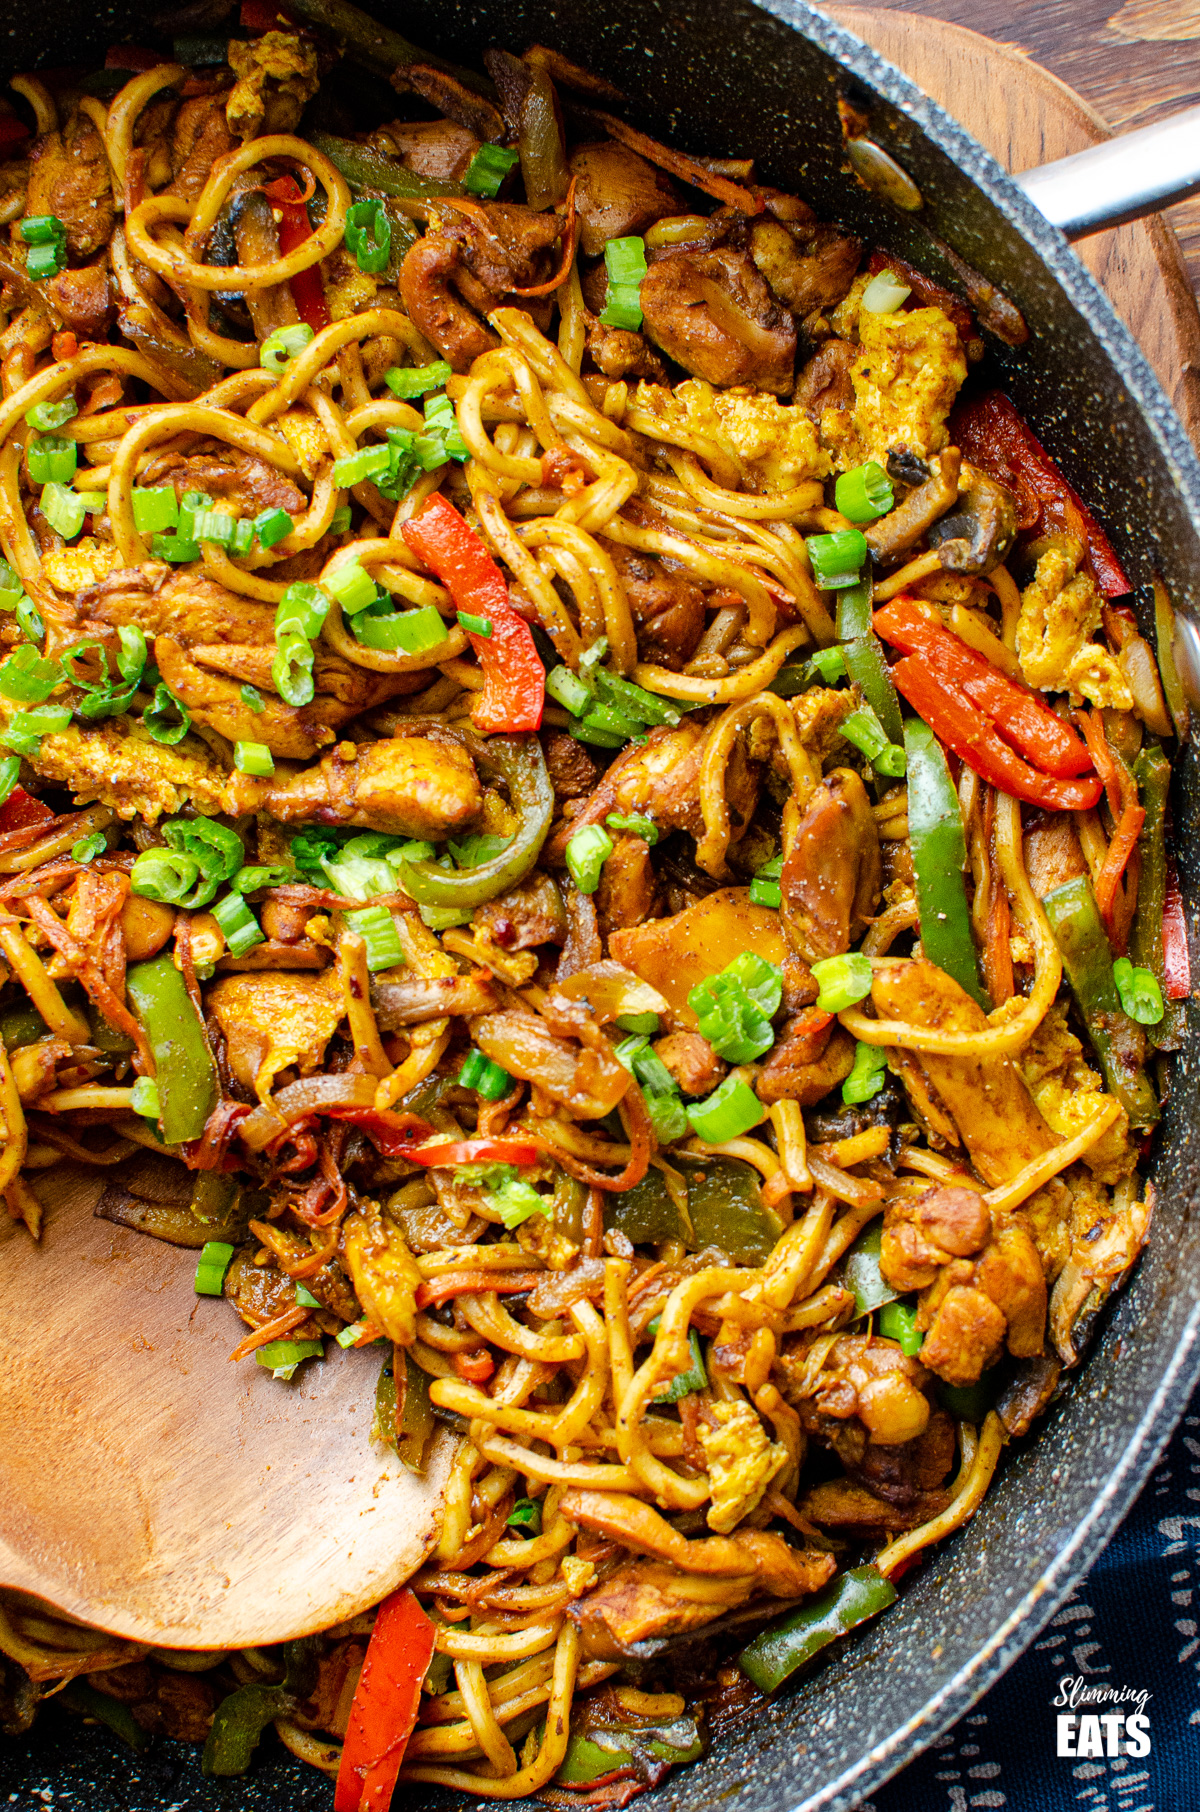 close up of Delicious Singapore Chicken Noodles in a frying pan with wooden spoon